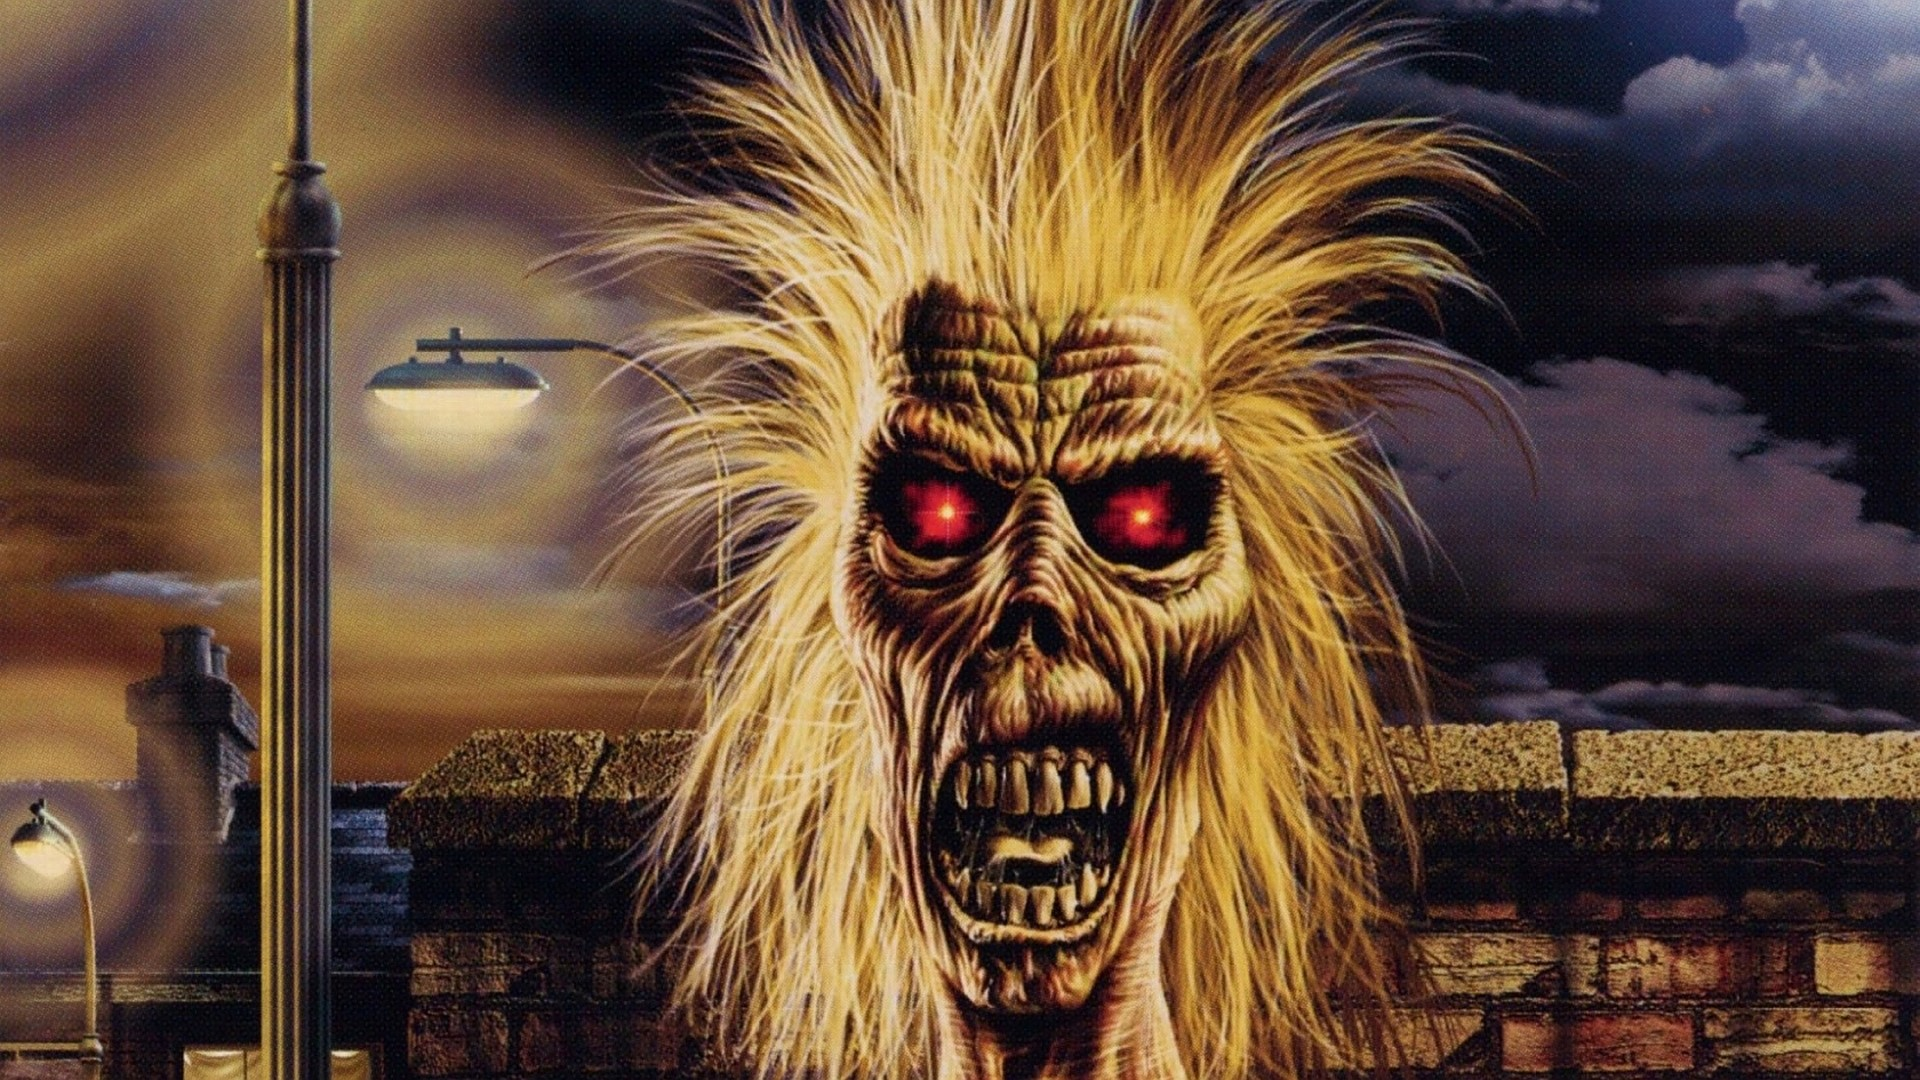 Music – Iron Maiden Wallpaper